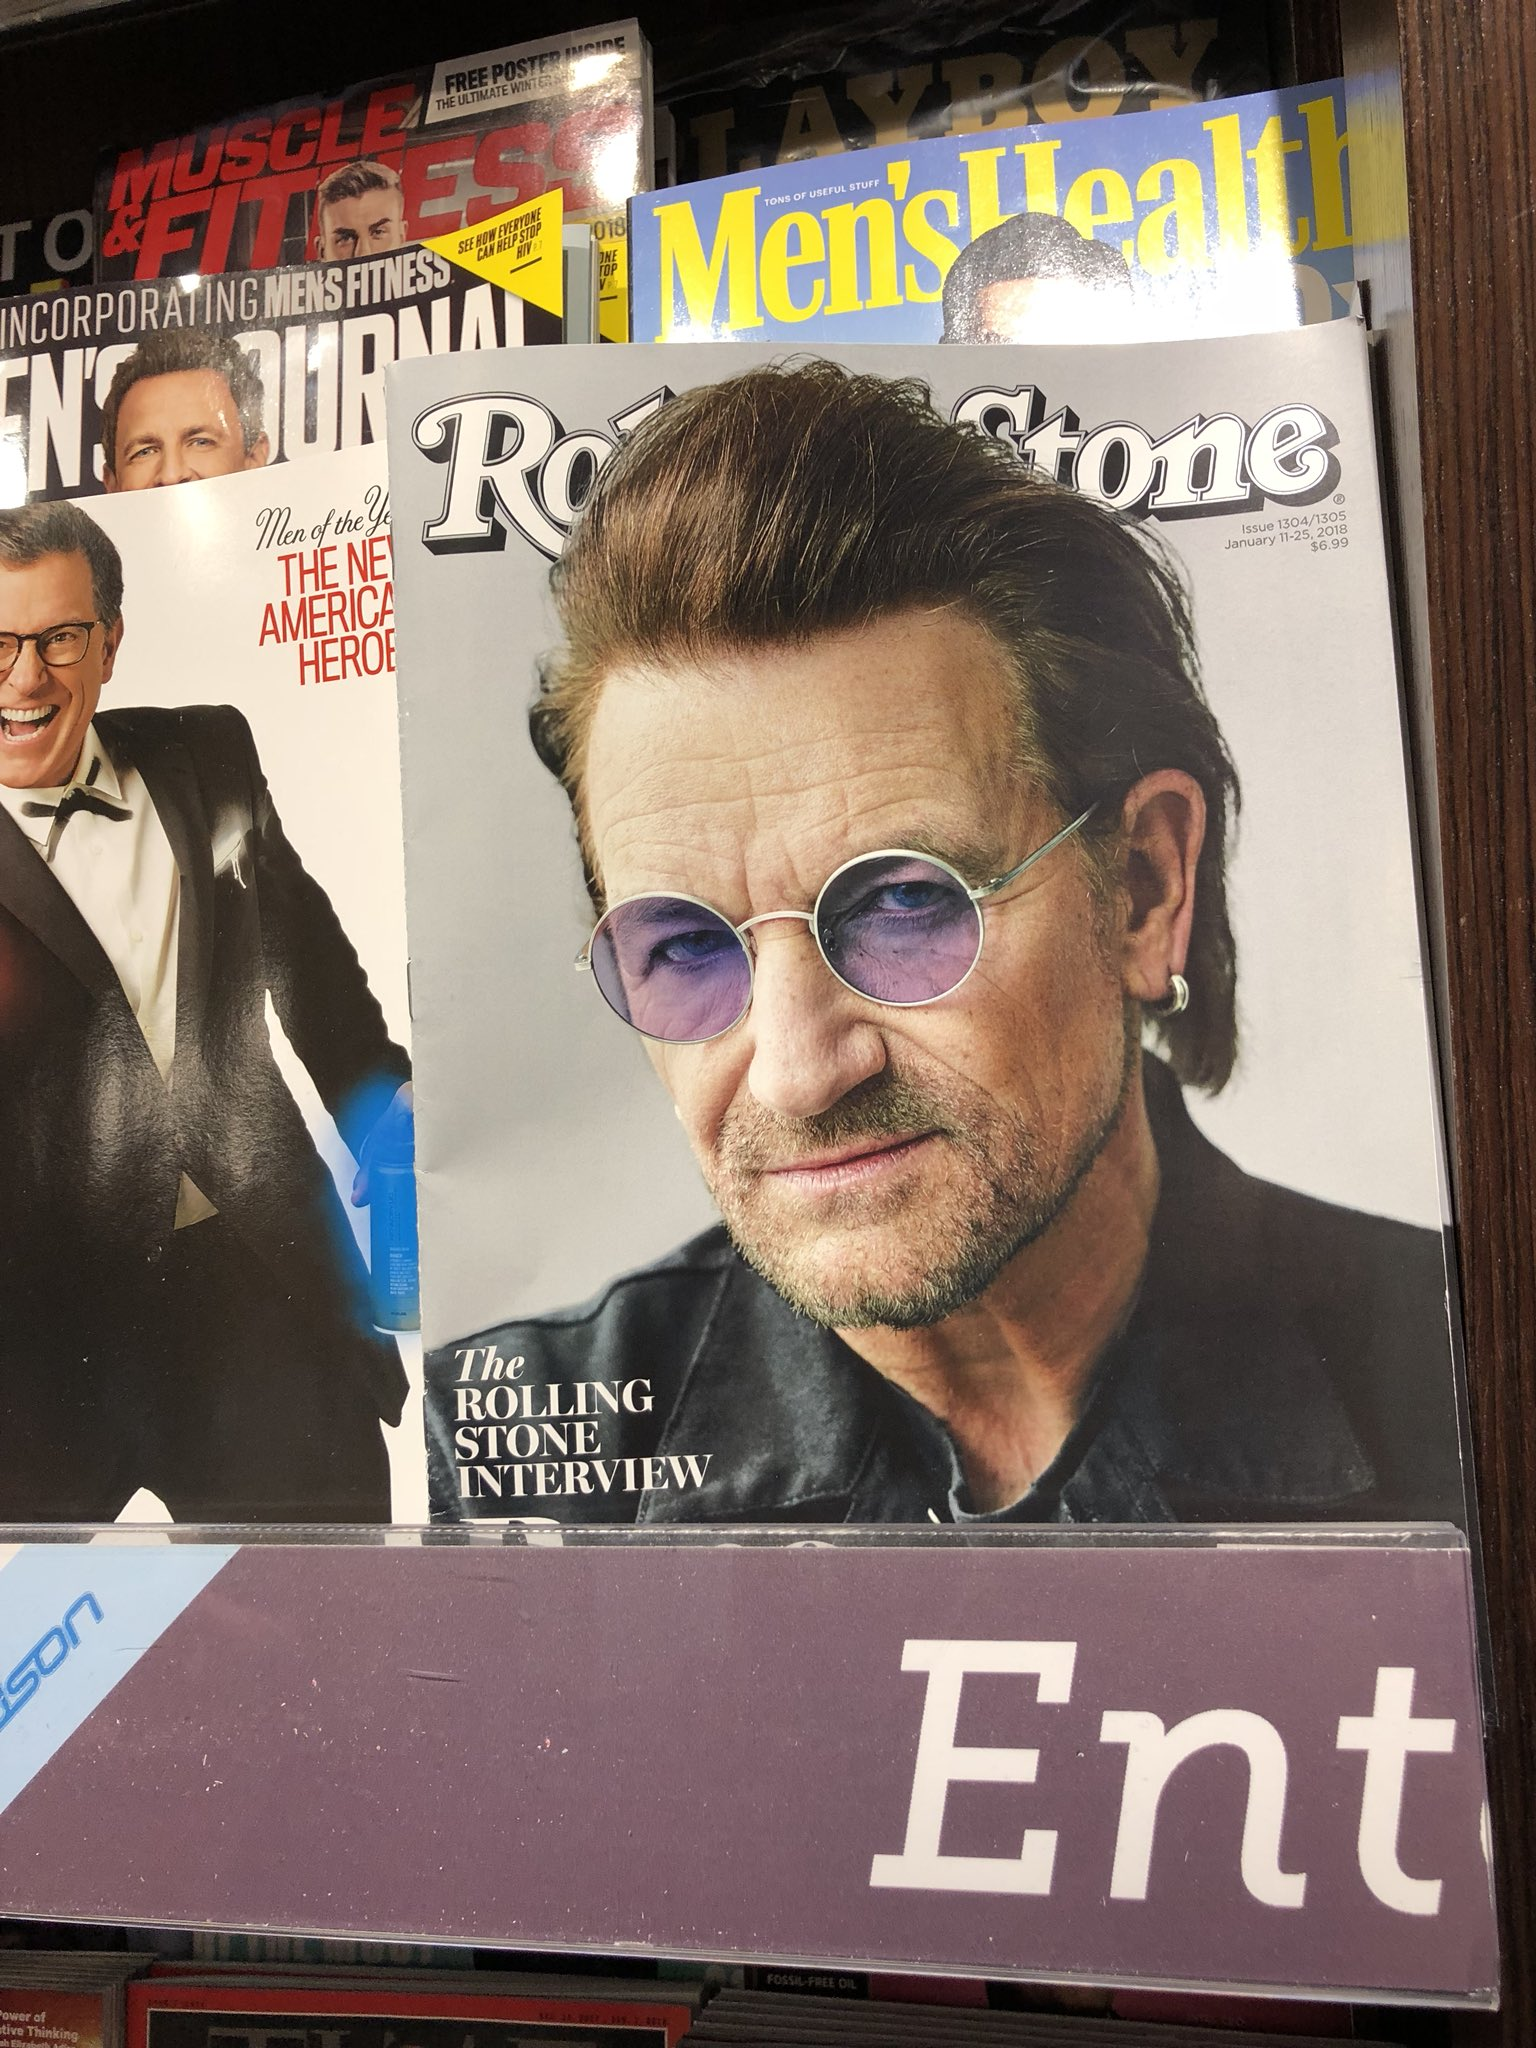 This dude giving me the stink-eye while I'm trying to buy magazines. https://t.co/1VR3q7PmRr